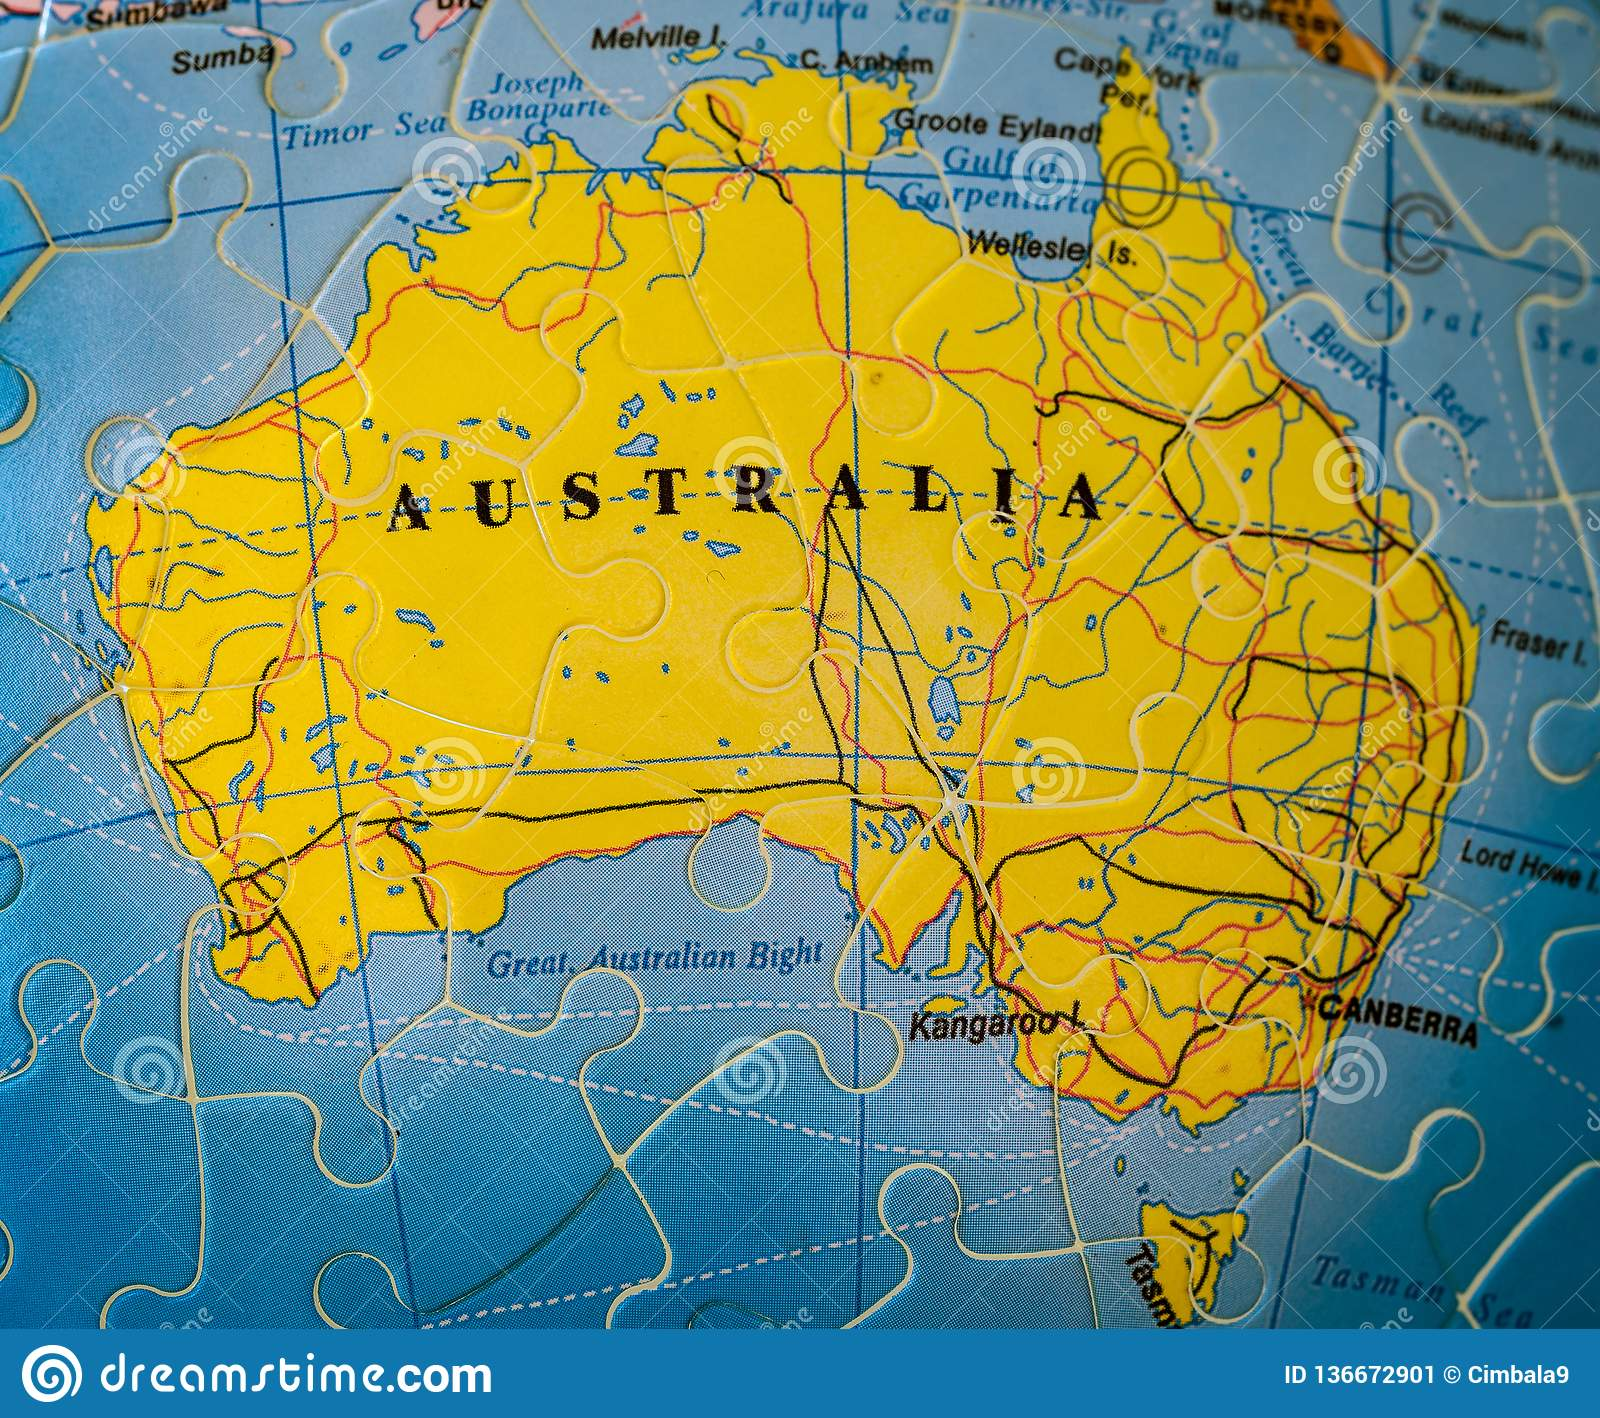 Map Of Australia And Tasmania.Puzzle Map Of Australia Including Tasmania Stock Image Image Of